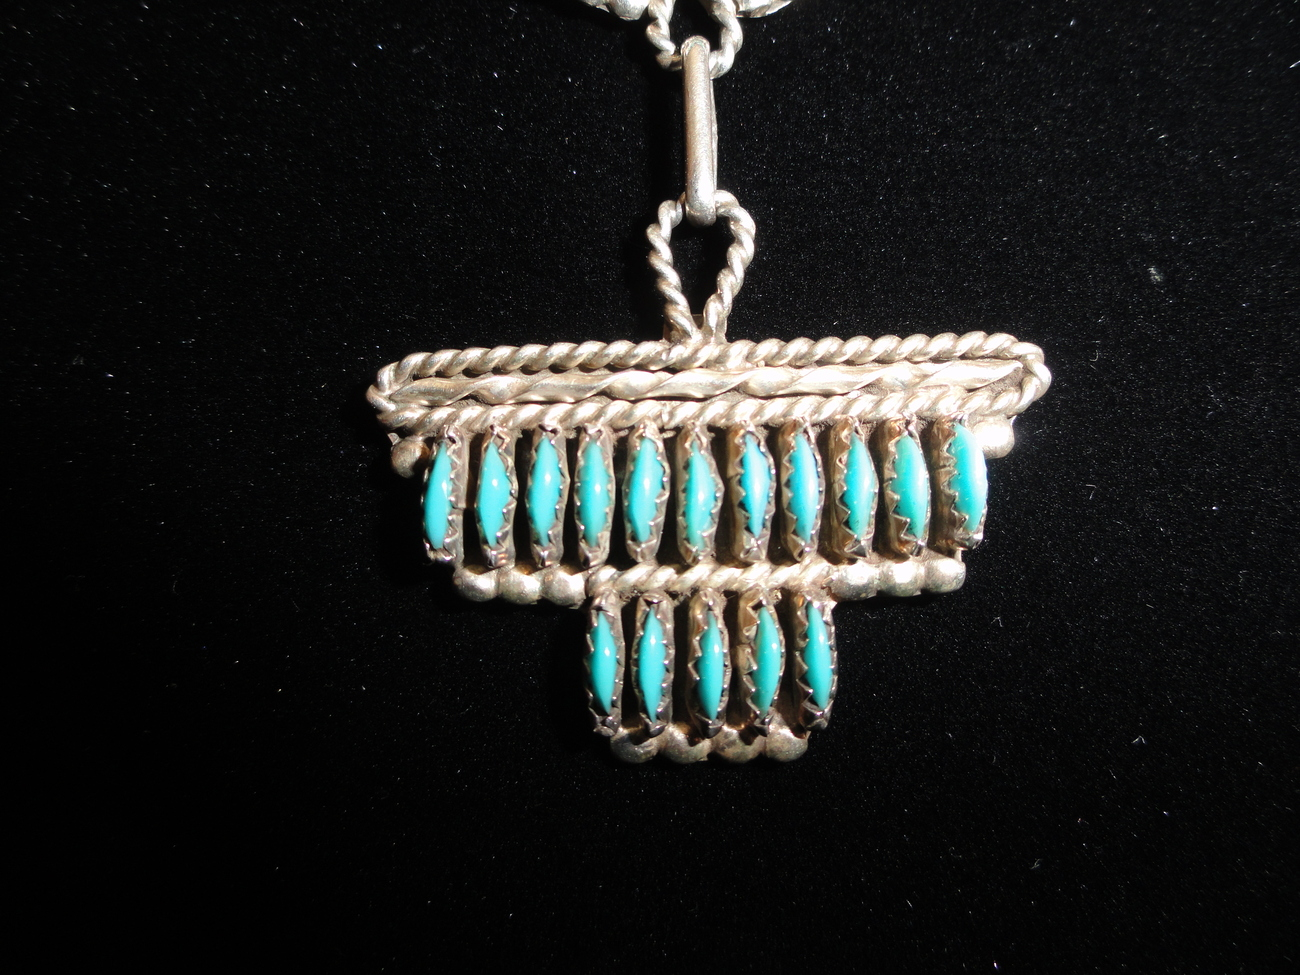 Nativeamericanzunisterlingneedlepointturquoisenecklace__4_